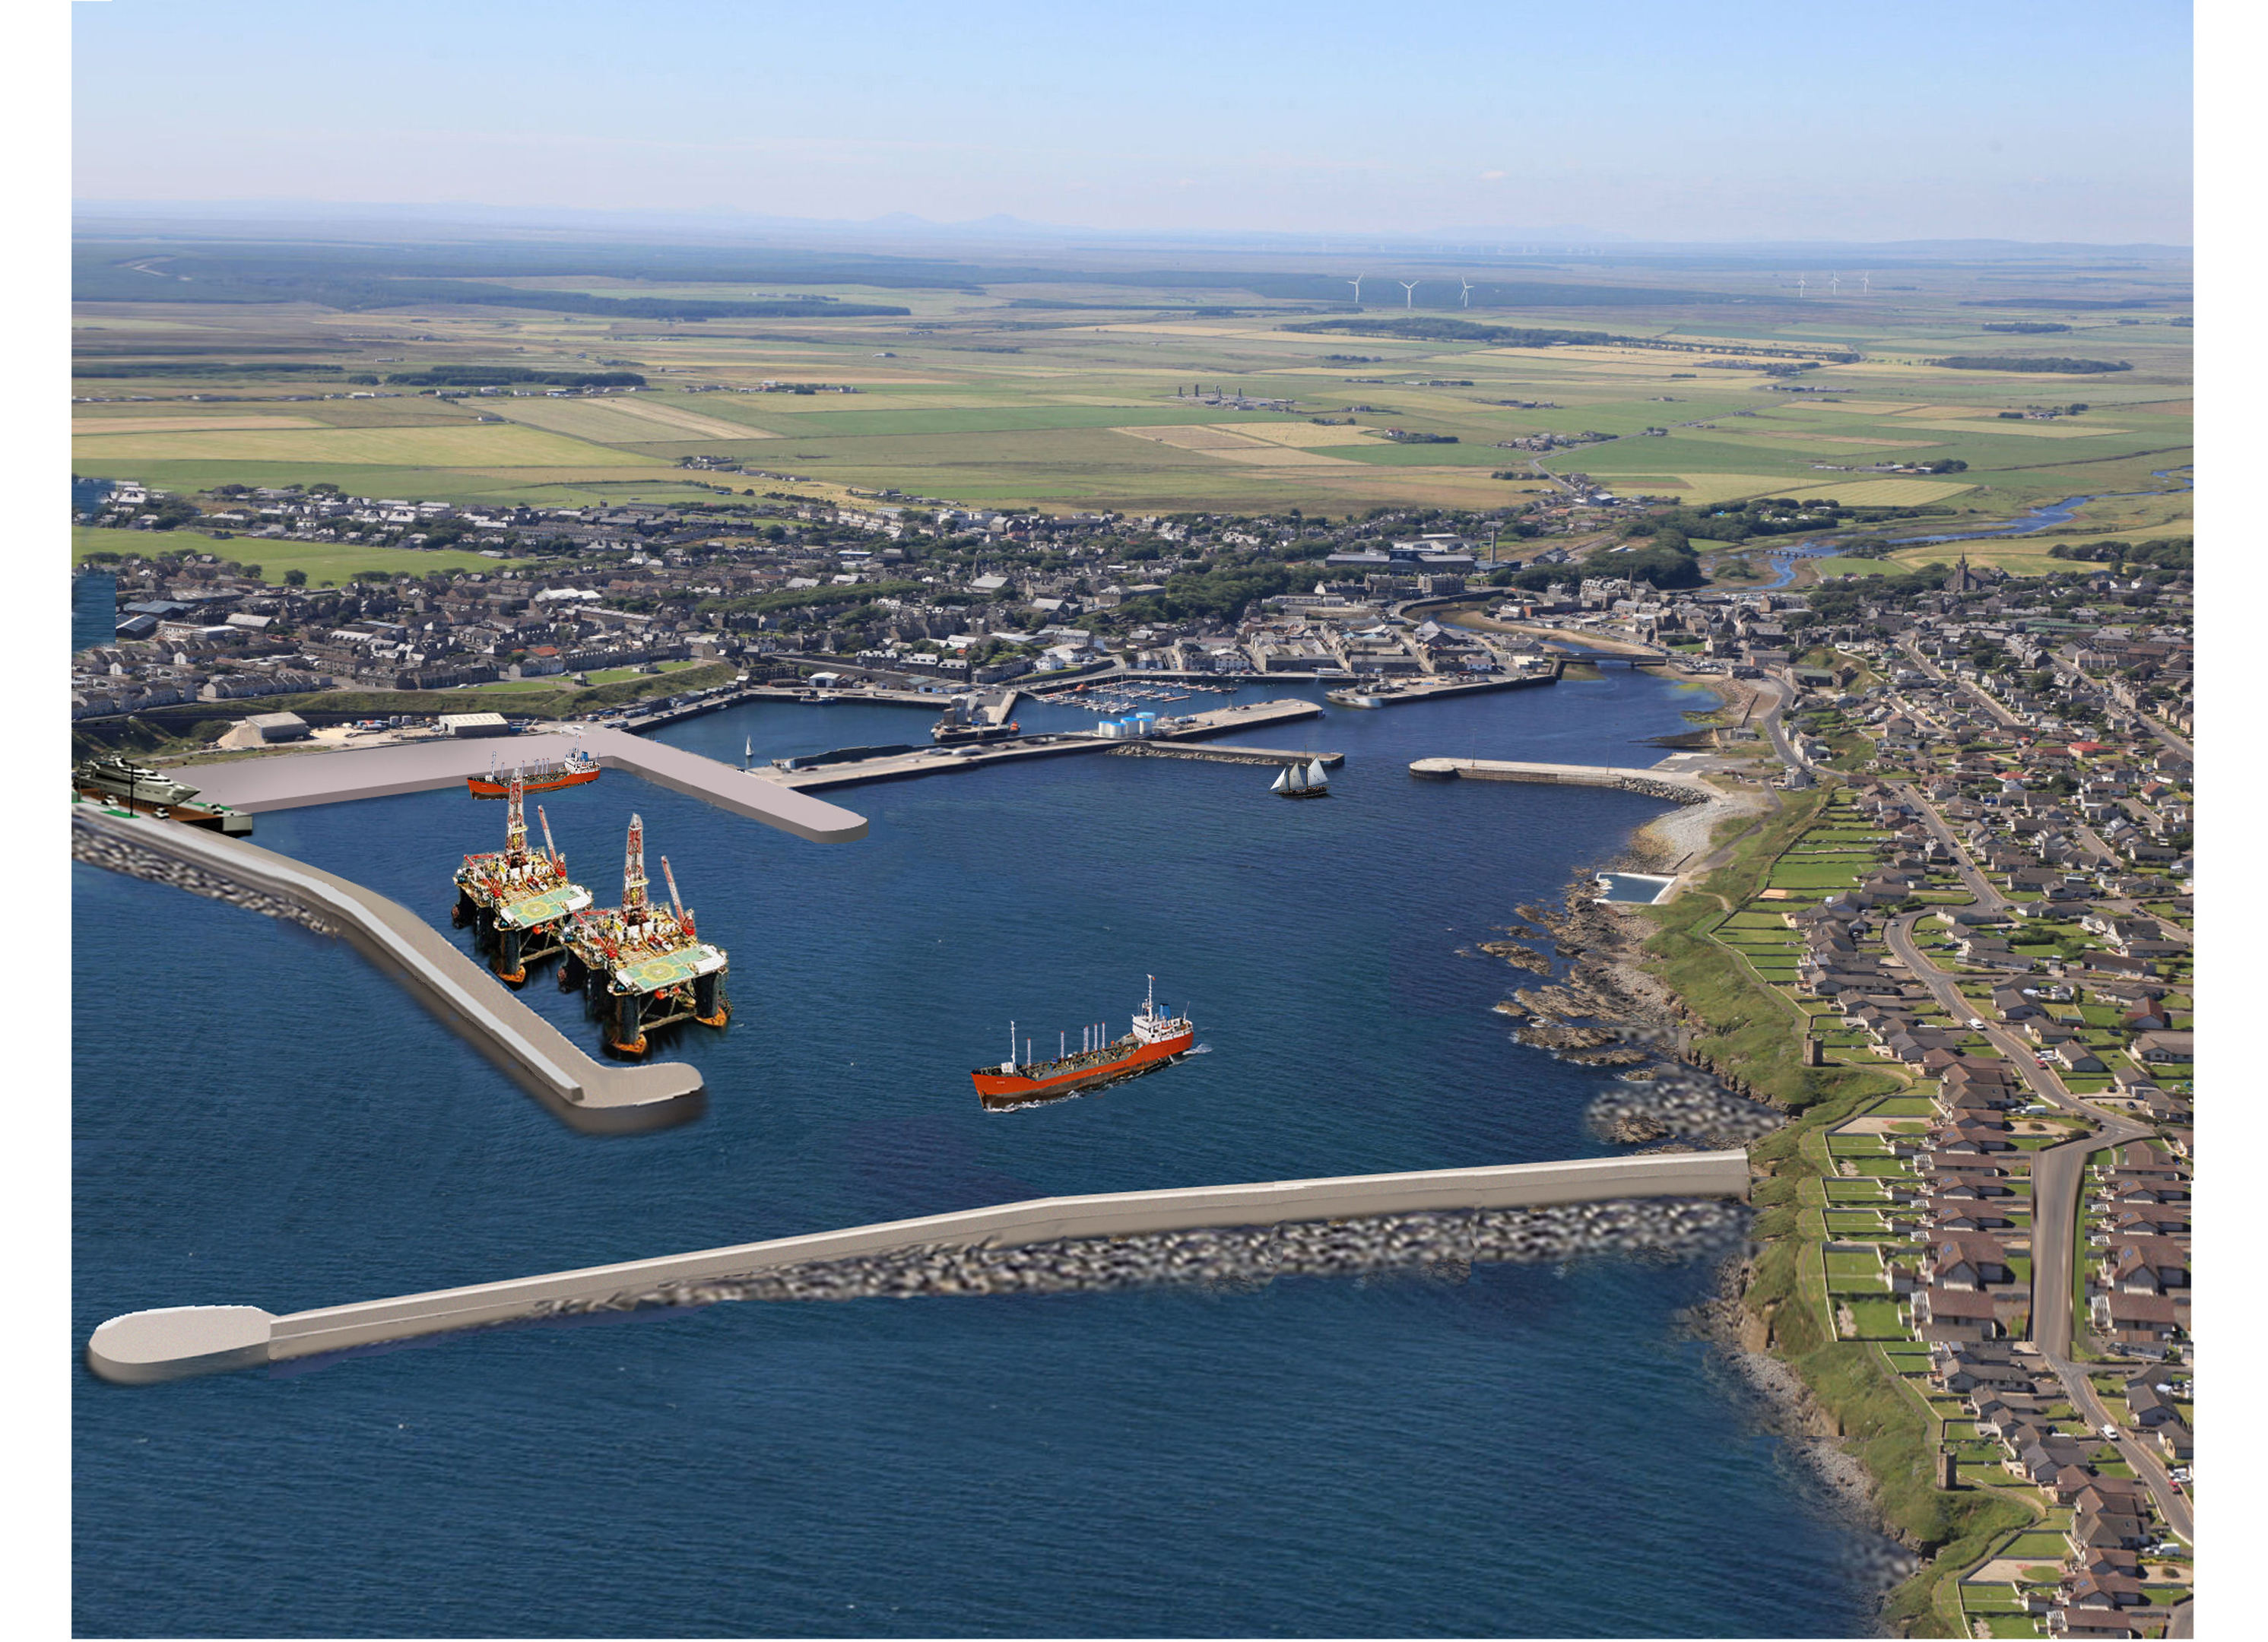 An artist's impression of what Wick Harbour could look like if the ambitious £100 million blueprint for the port becomes a reality.